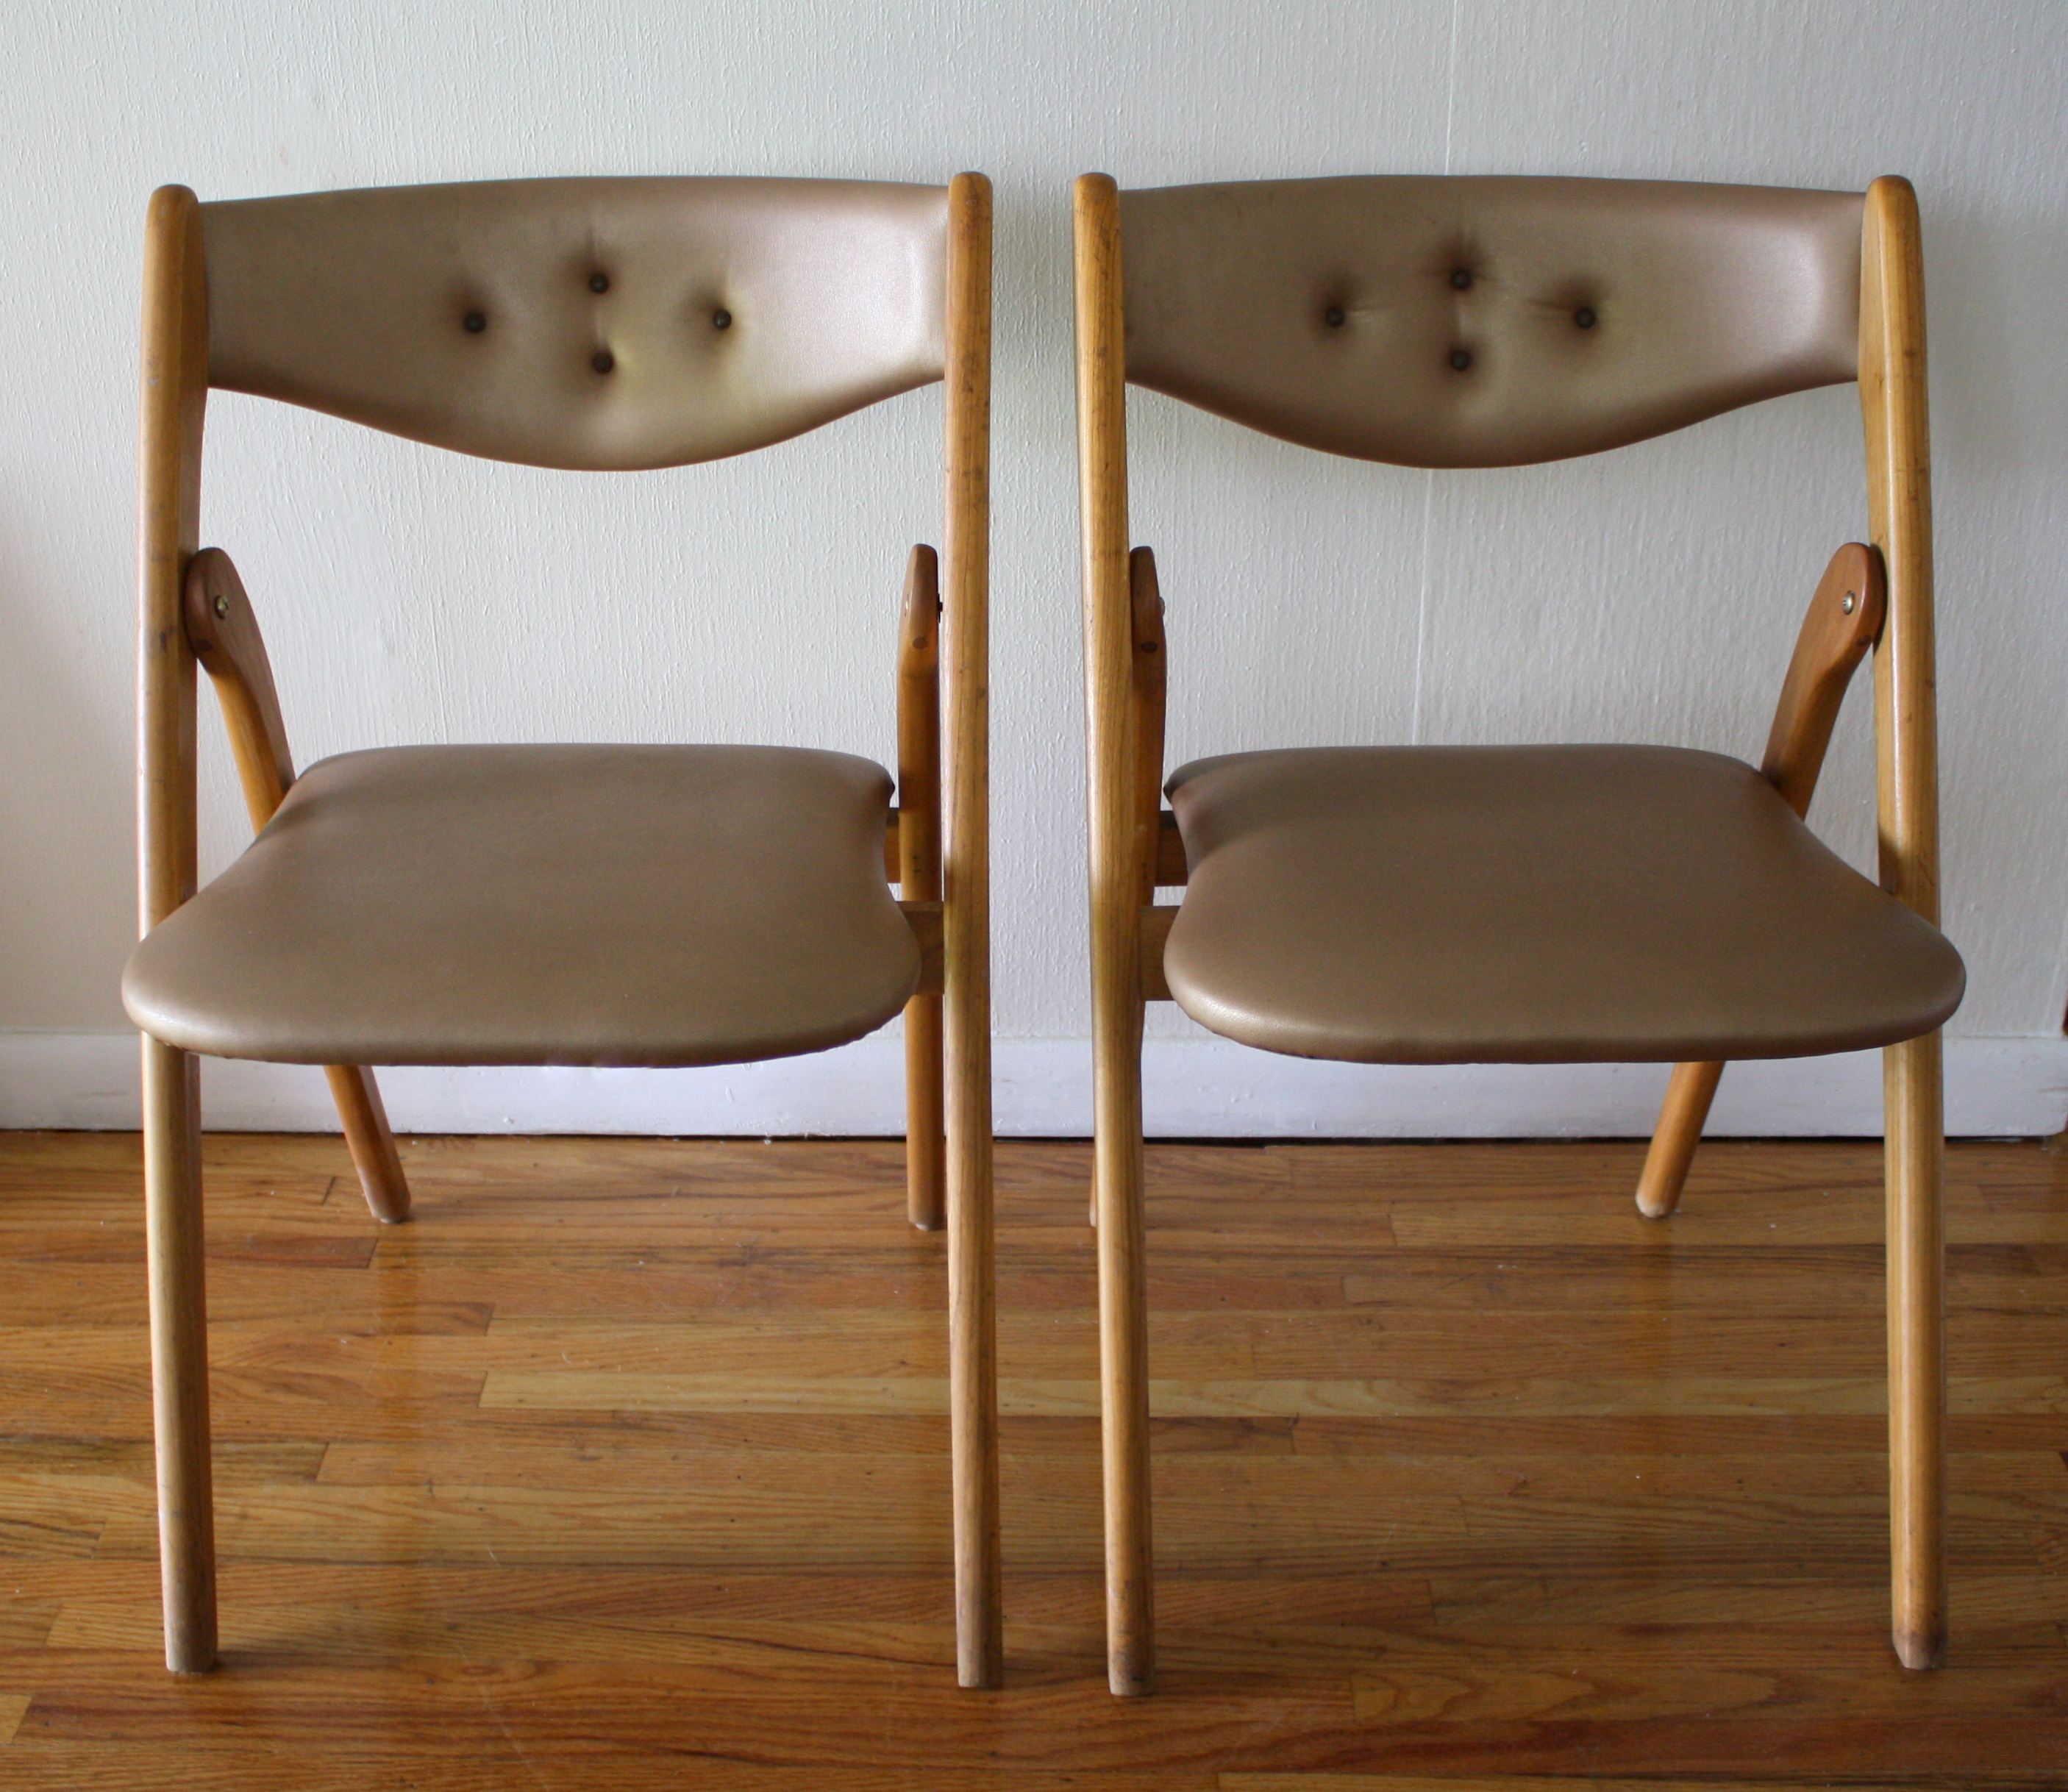 Modern Folding Chairs Mid Century Modern Coronet Folding Chairs Picked Vintage